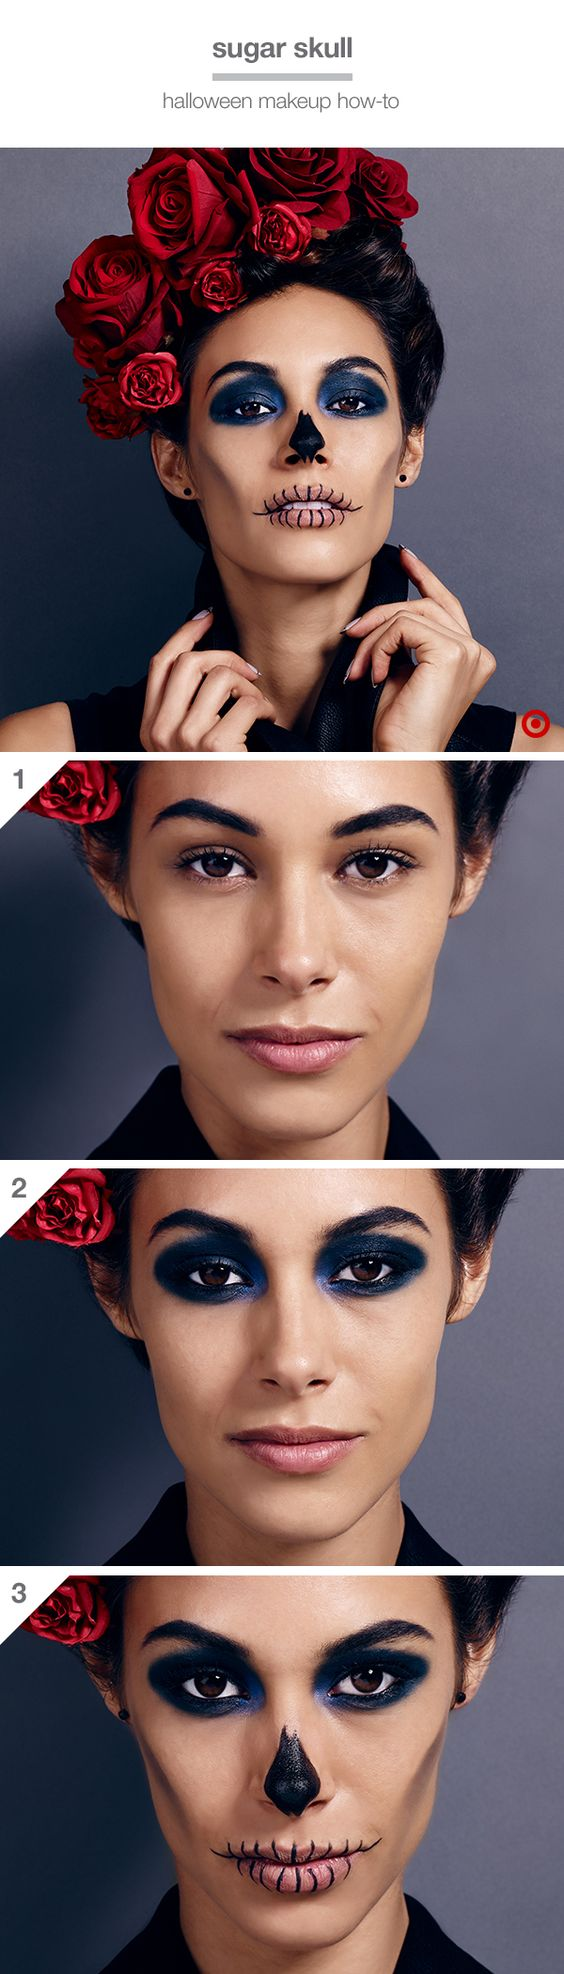 Go all-out with a killer (but easy) Halloween look: 1. Give brows a fierce arch with dark eyebrow wax. 2. Apply dark navy shadow on eyelids, creases and under eyes for a deep-set, dramatic look. Line waterlines with black liner & apply mascara. 3. Apply concealer on lips. Keeping lips closed, draw vertical lines across both lips with black gel liner. Then smudge black costume makeup along the cheekbones and down toward the chin and paint the tip of the nose. Dying to try it? Shop the look.: